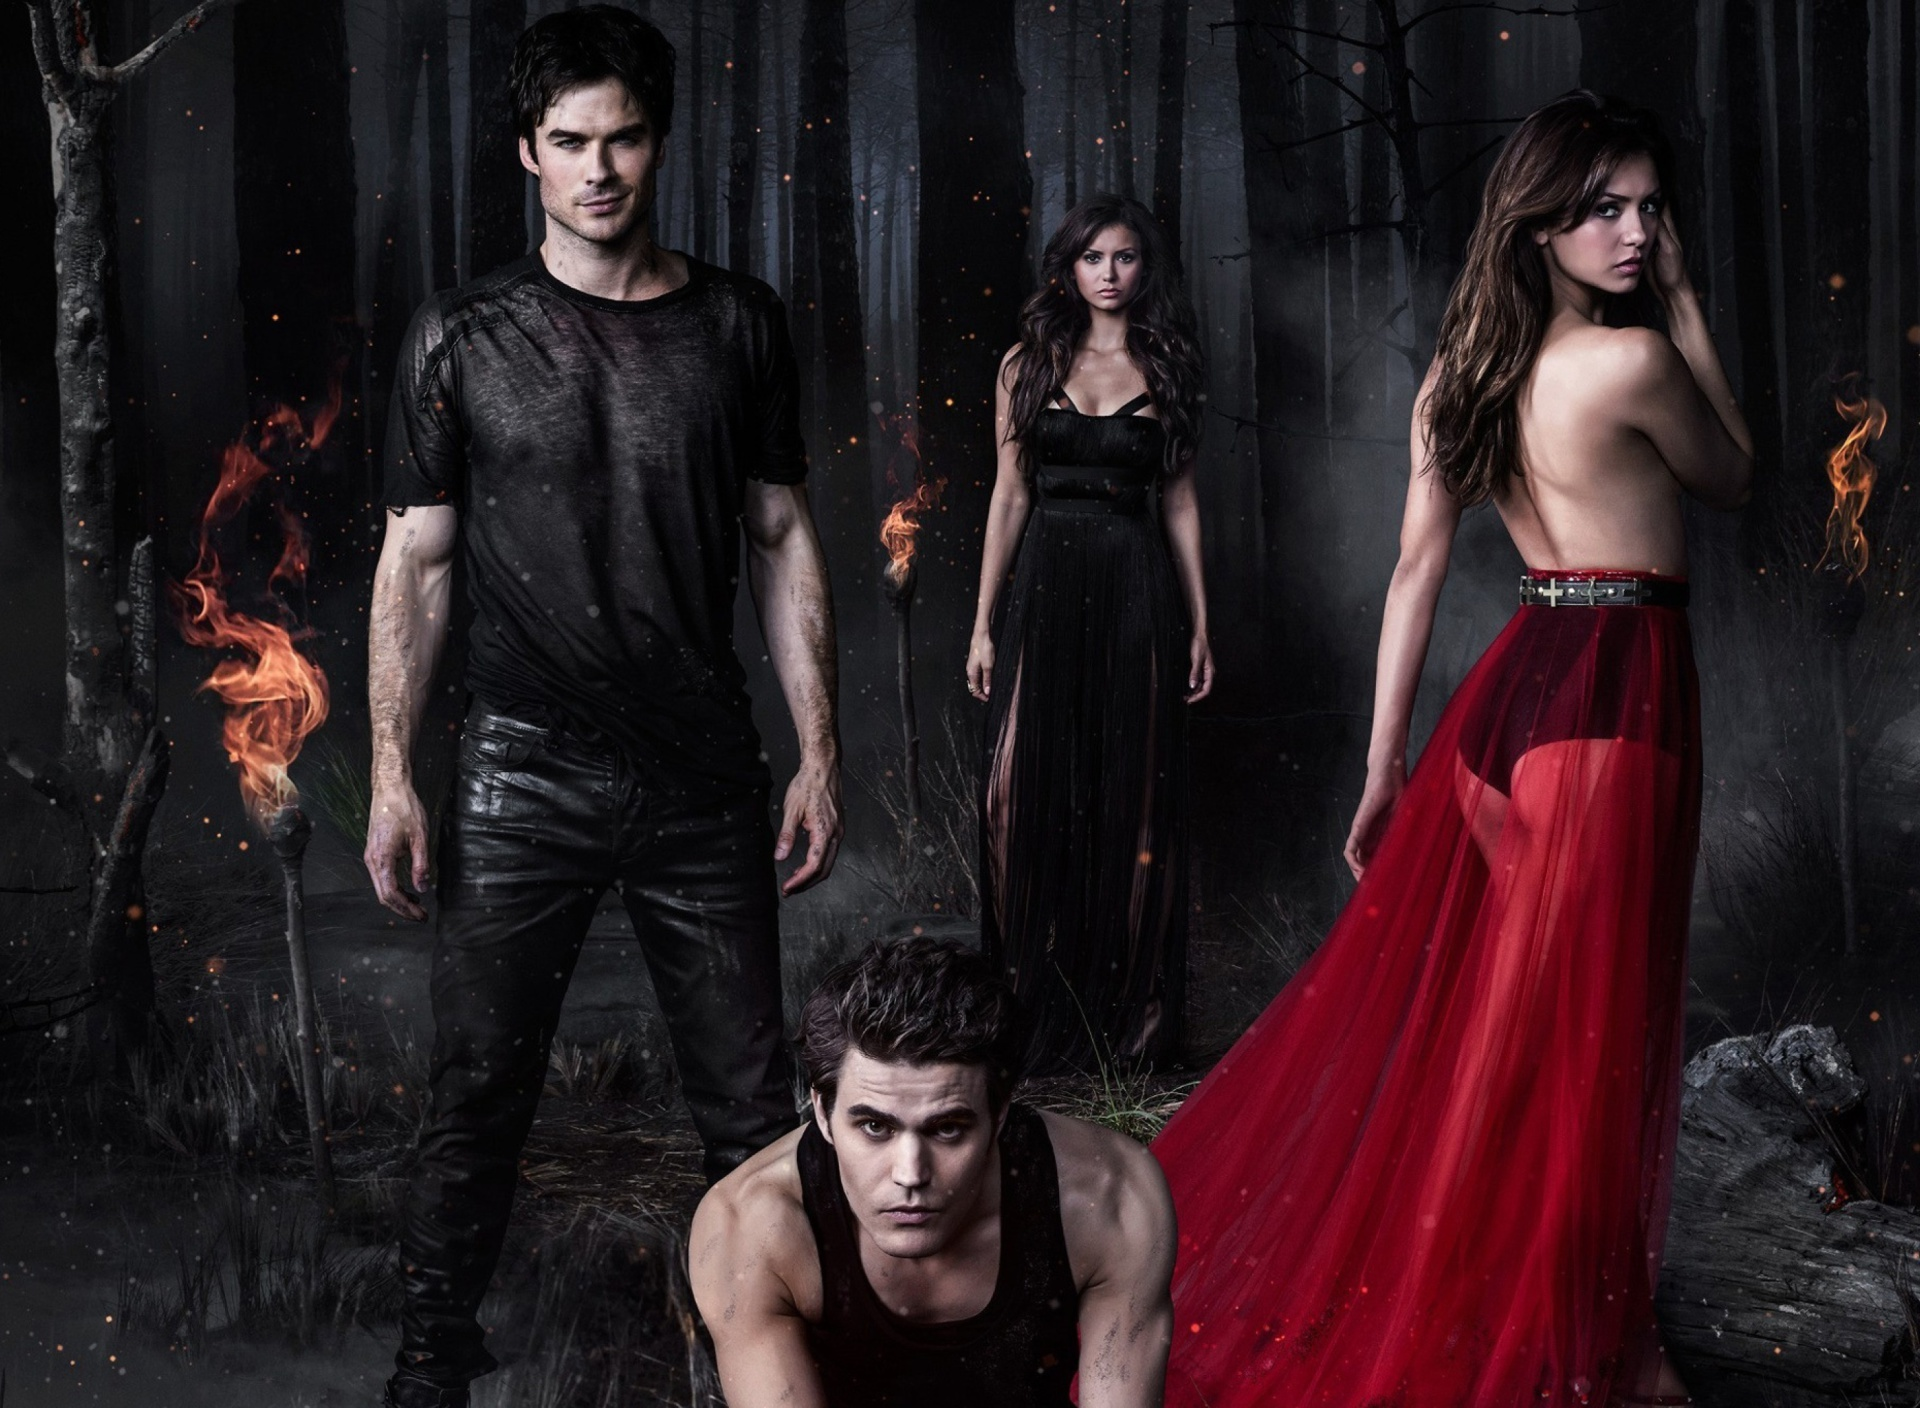 The Vampire Diaries is an American supernatural horror romance television series created by Kevin Williamson based on the novels of the same name by author L J Smith